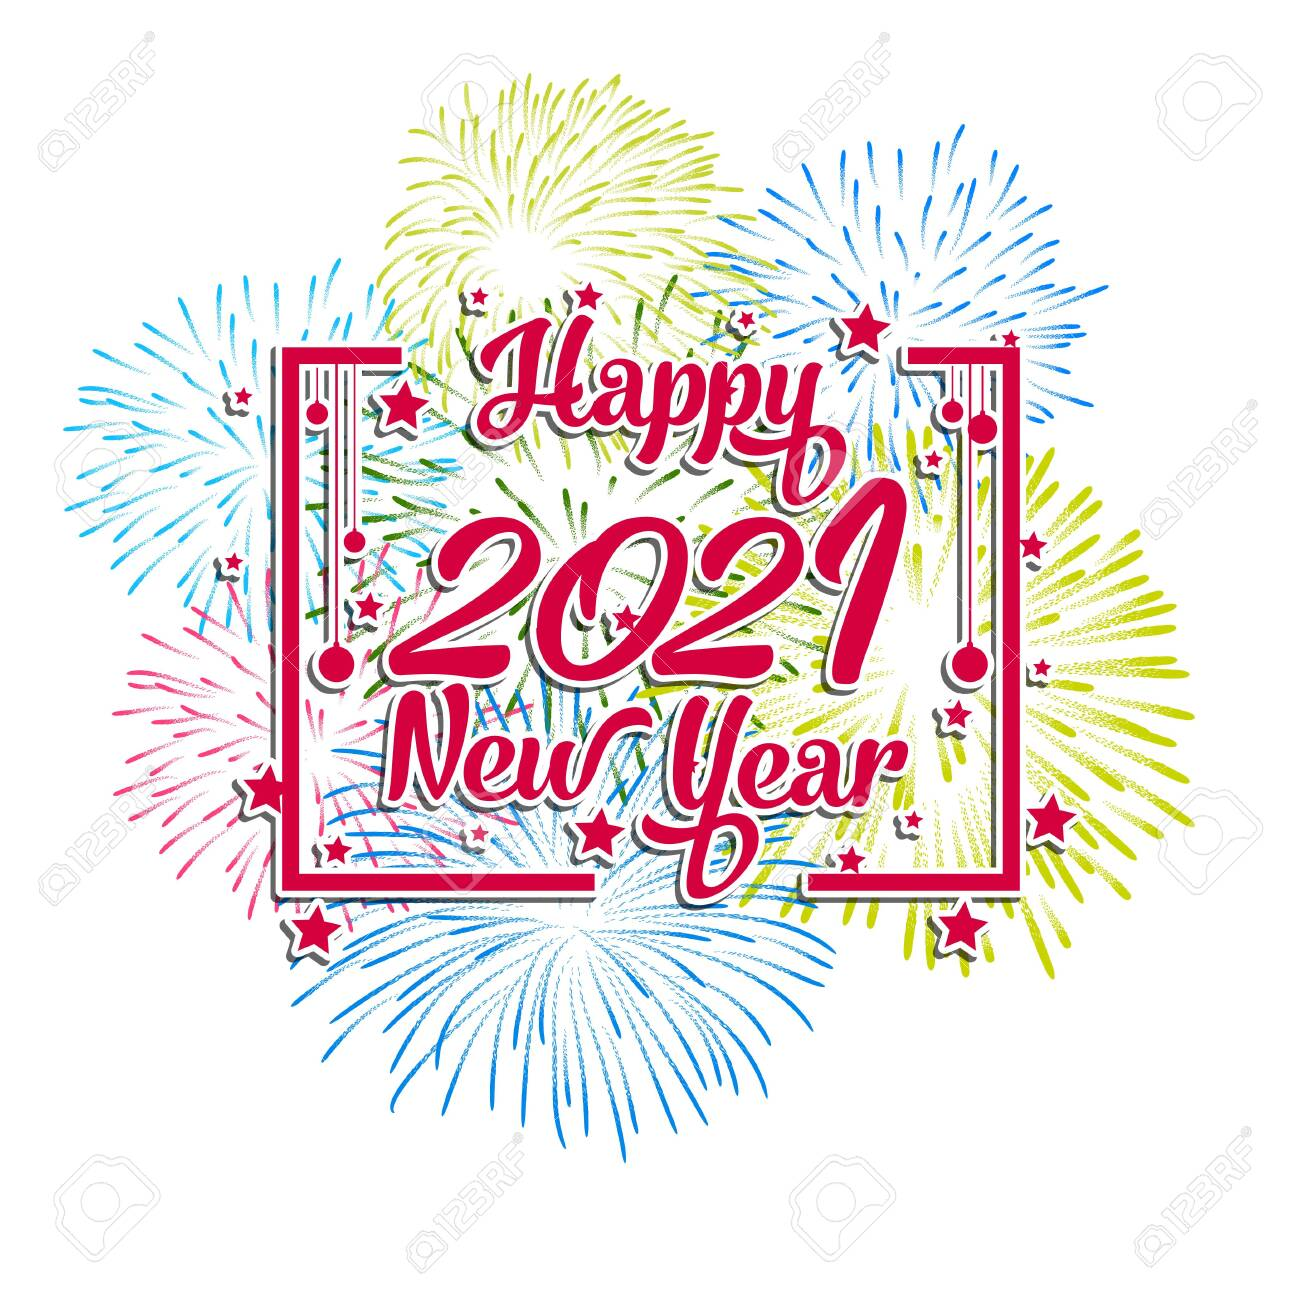 Happy New Year 2021 With Firework Background Firework Display Royalty Free Cliparts Vectors And Stock Illustration Image 136892288